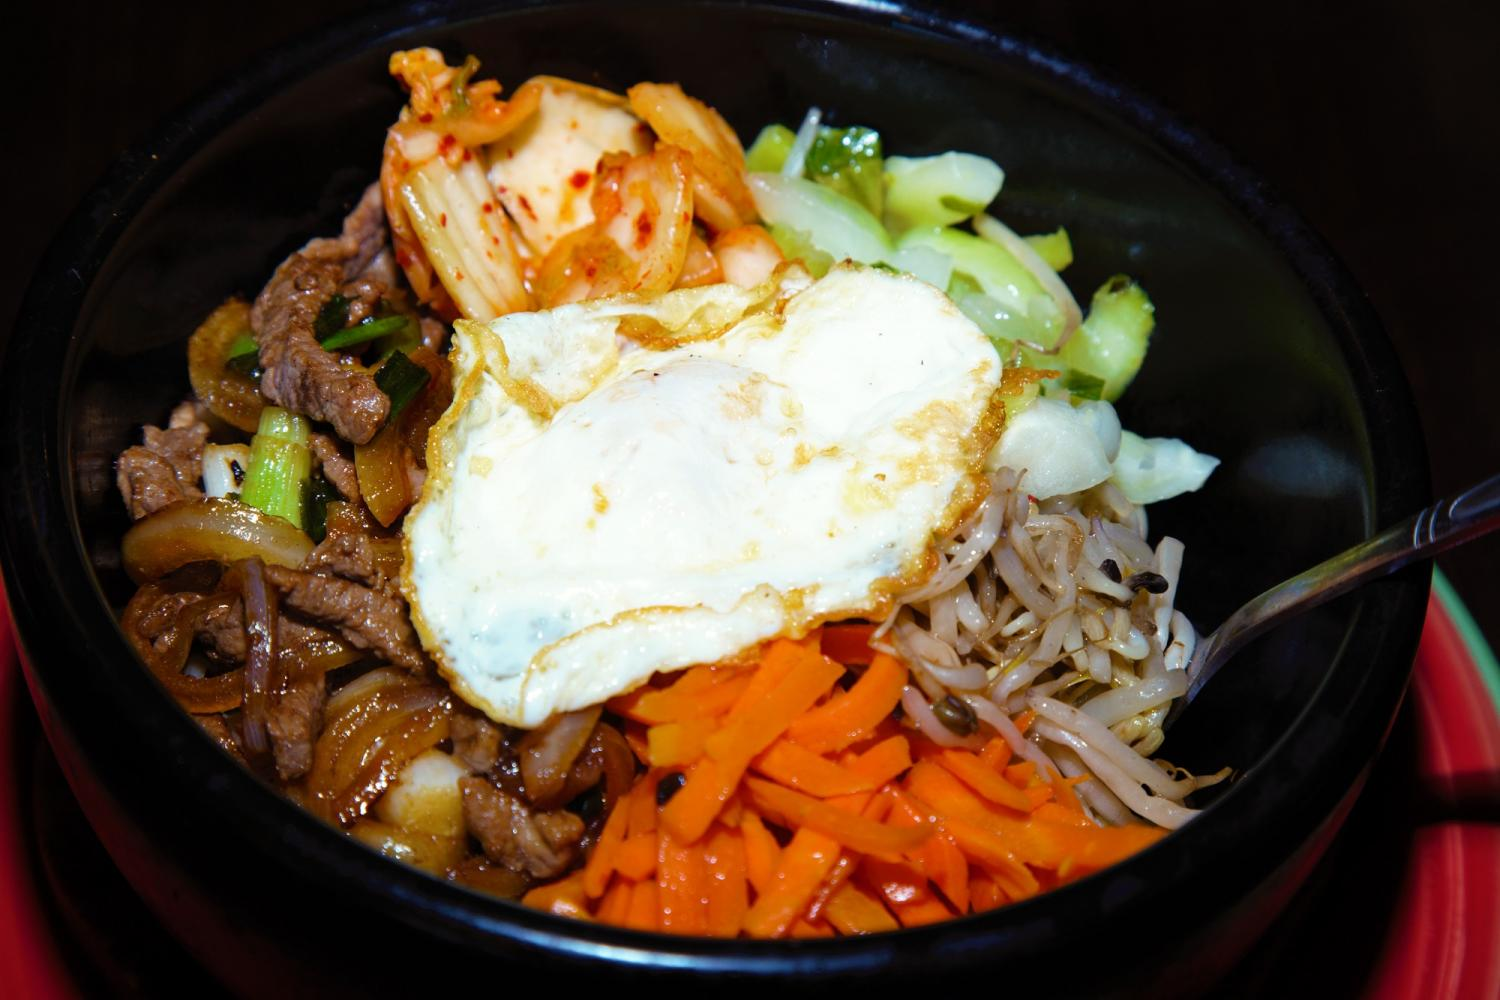 The hot stone bibimbap, a traditional Korean rice dish served in a hot stone, which makes the rice at the bottom crispy.